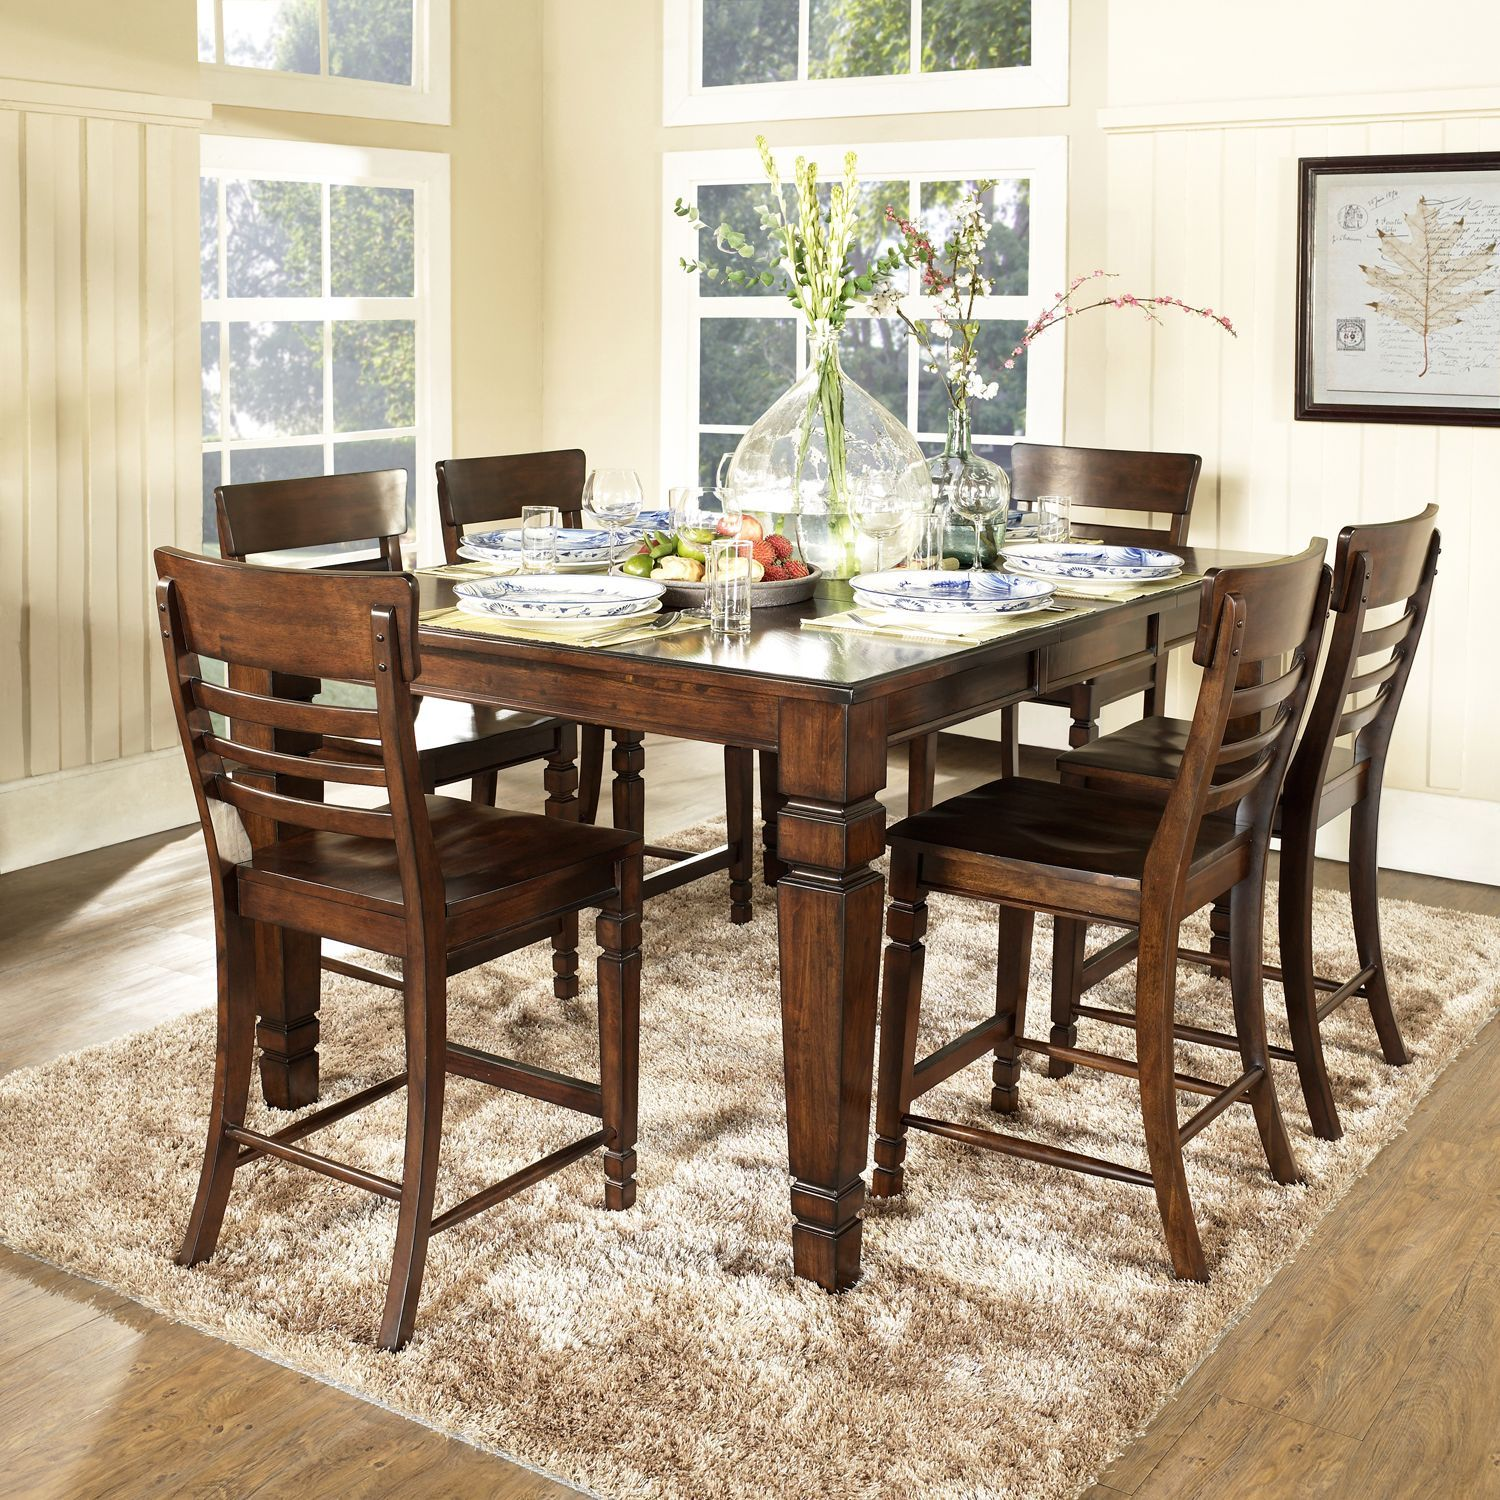 Our New Dining Room Set Under 700 From Samsclub Of All Places And Better Quality Than The Local Furniture Stores D Hogar Comedores Madera